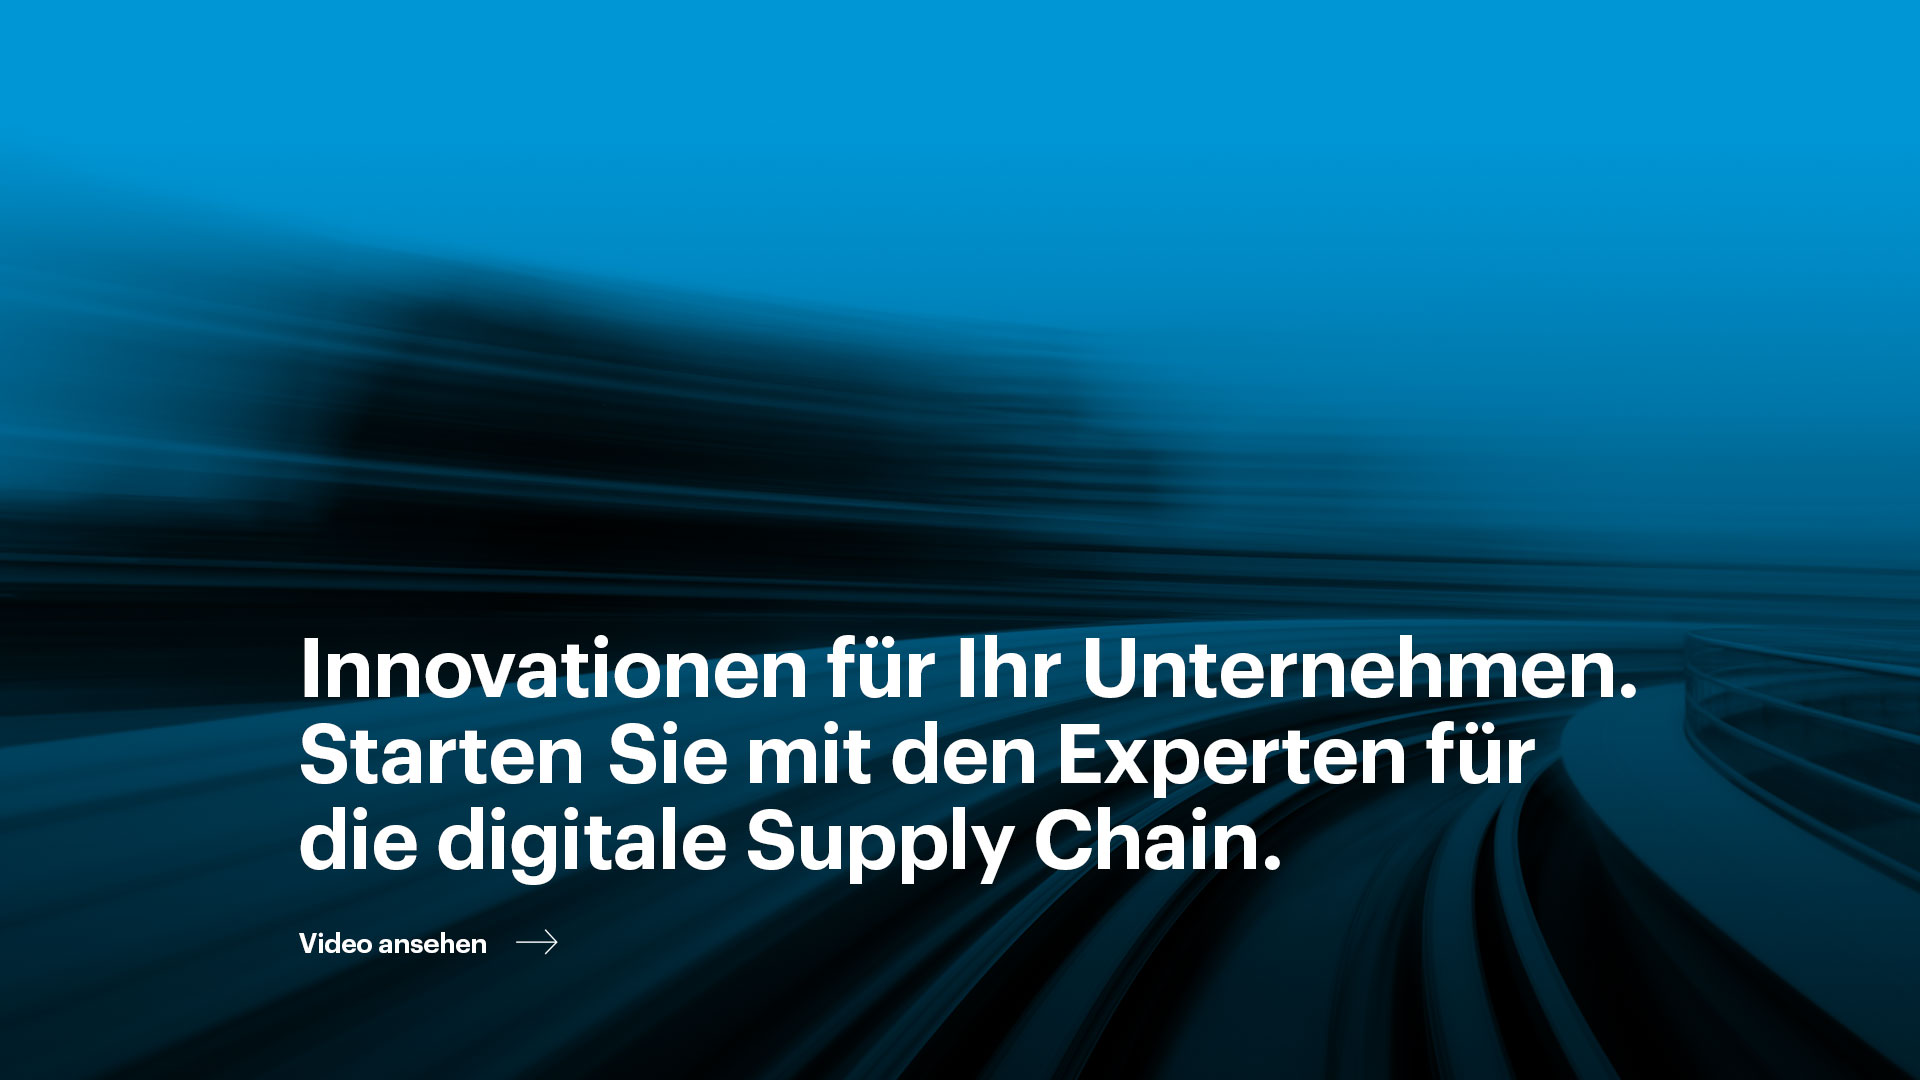 Innovate-business-digital-supply-chain-expert-DE